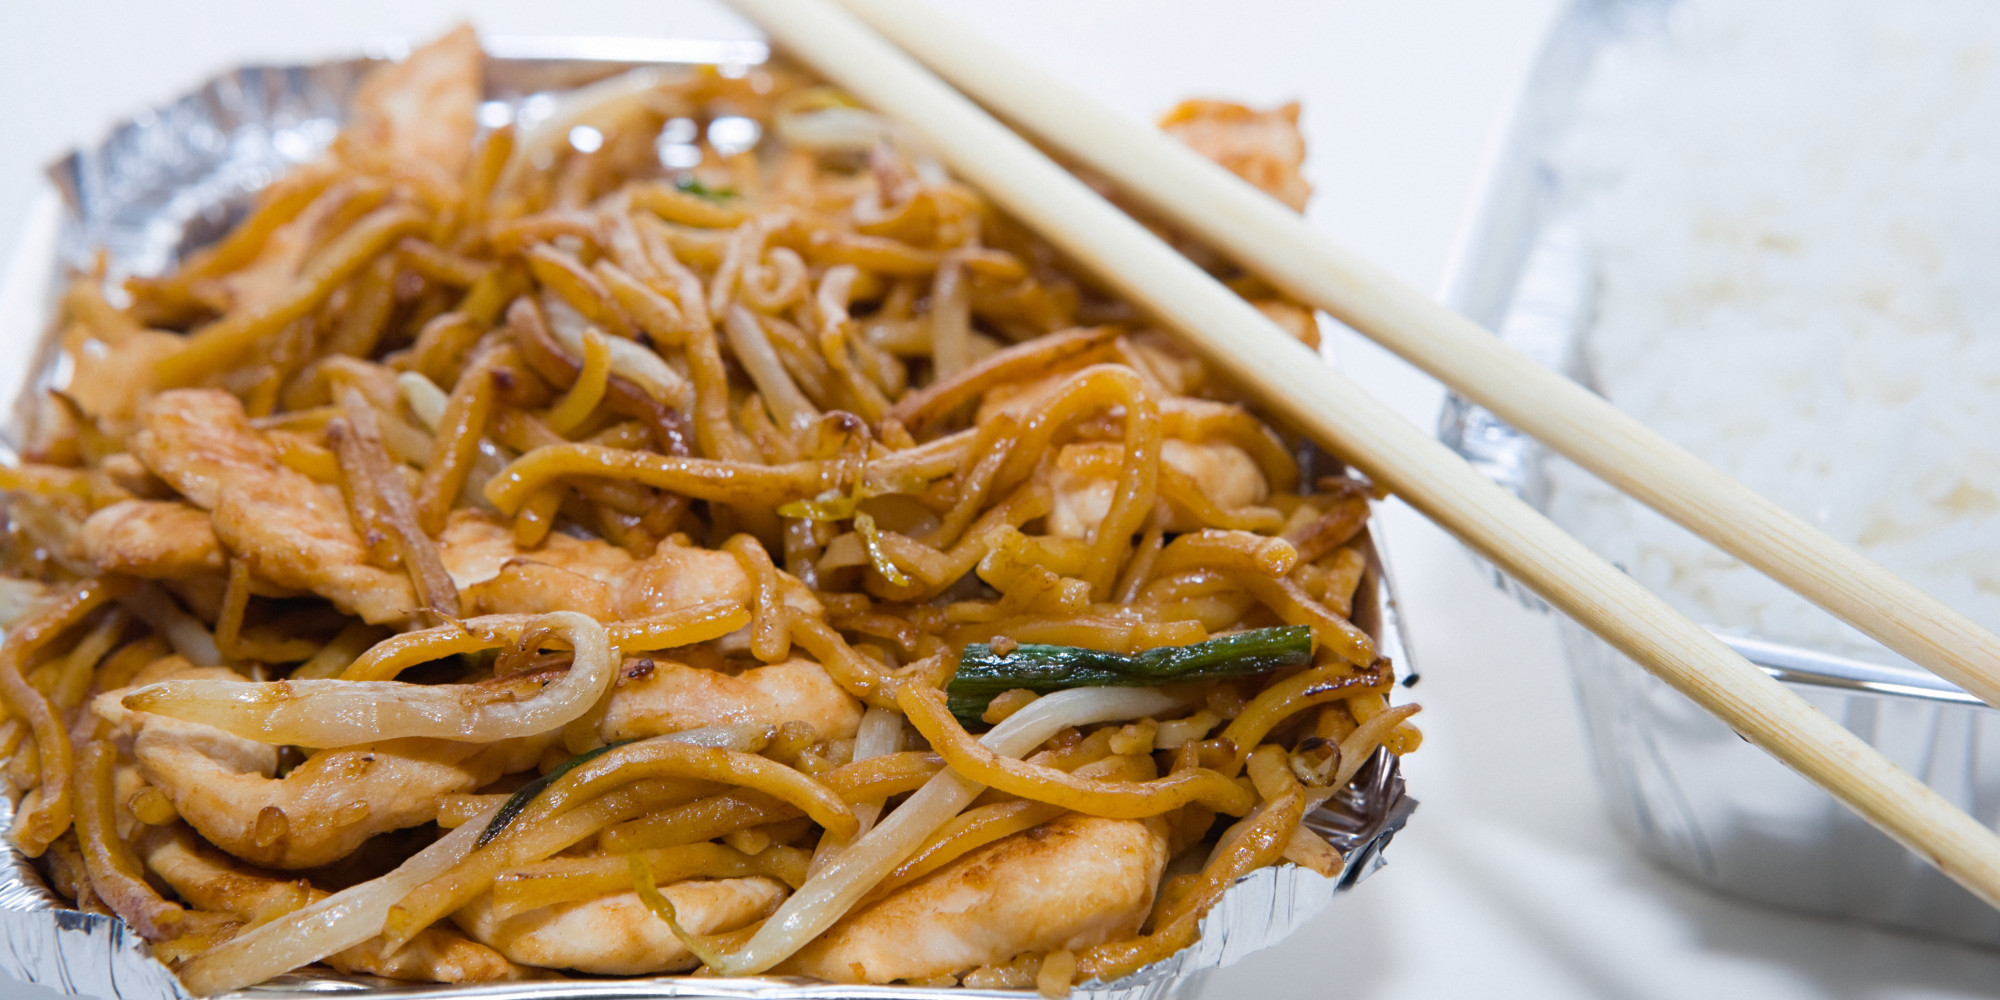 Toronto Chinese Food Delivery: 15 Best Restaurants When You're Hungry